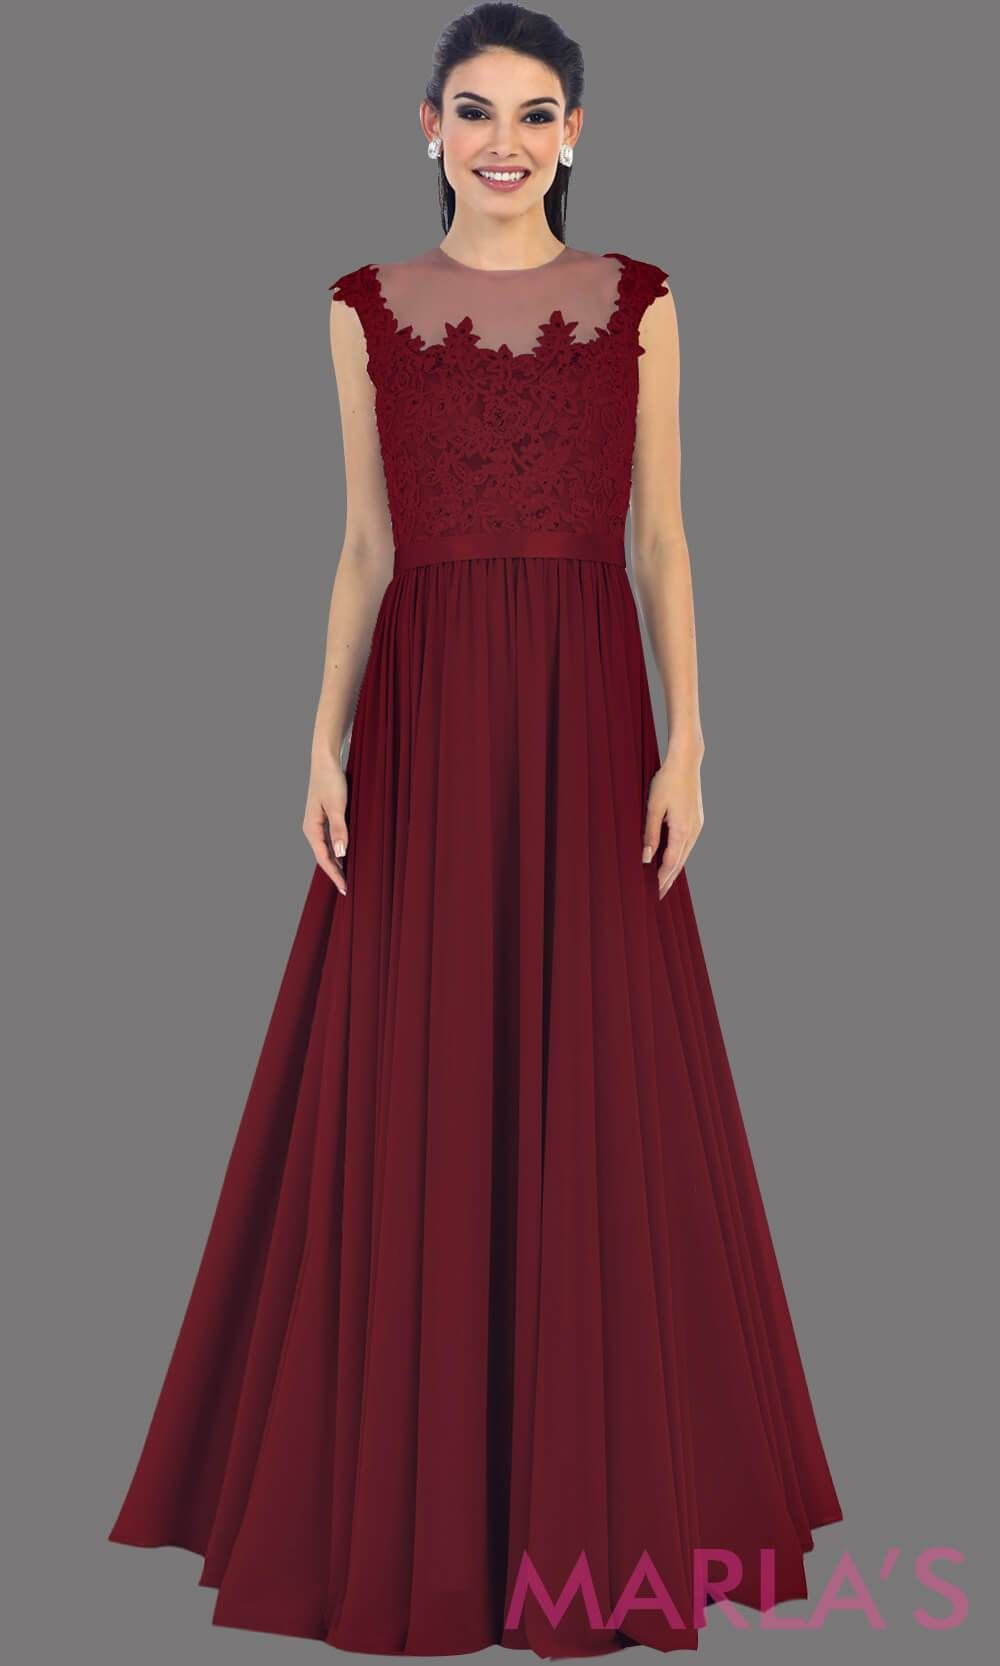 3bf341d43691a Long burgundy flowy dress with sheer lace bodice. It has a high neck and  high back with an illusion neckline. The dark red is a perfect wedding  guest dress ...